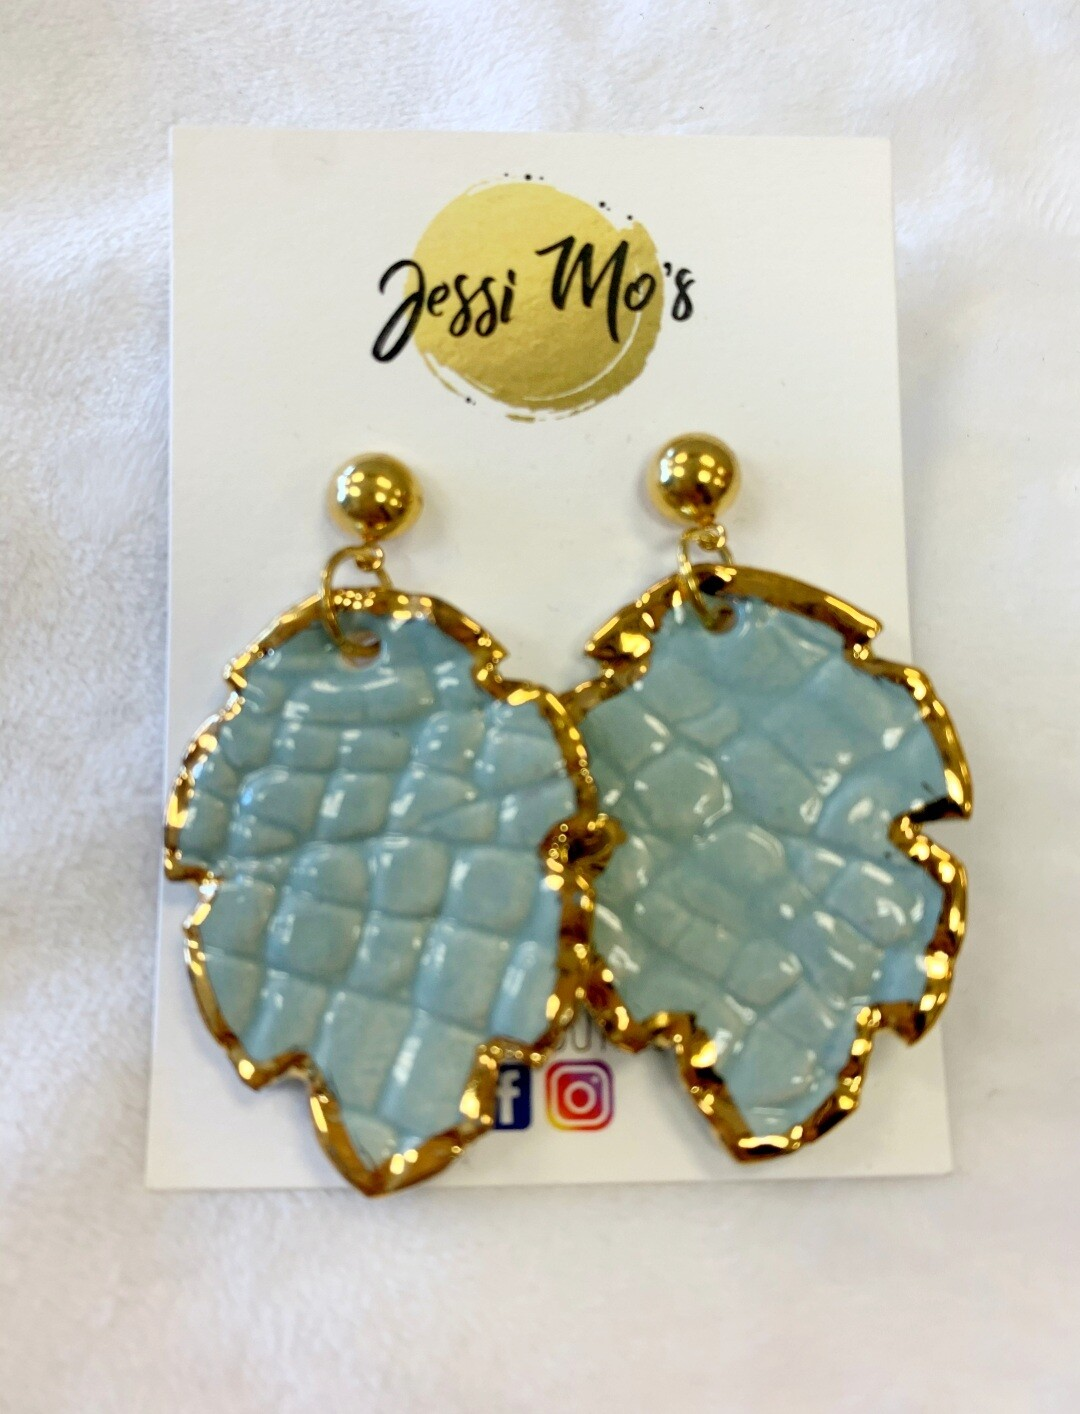 Jessi Mo's Ceramic Earrings- My Blue Heaven Glaze